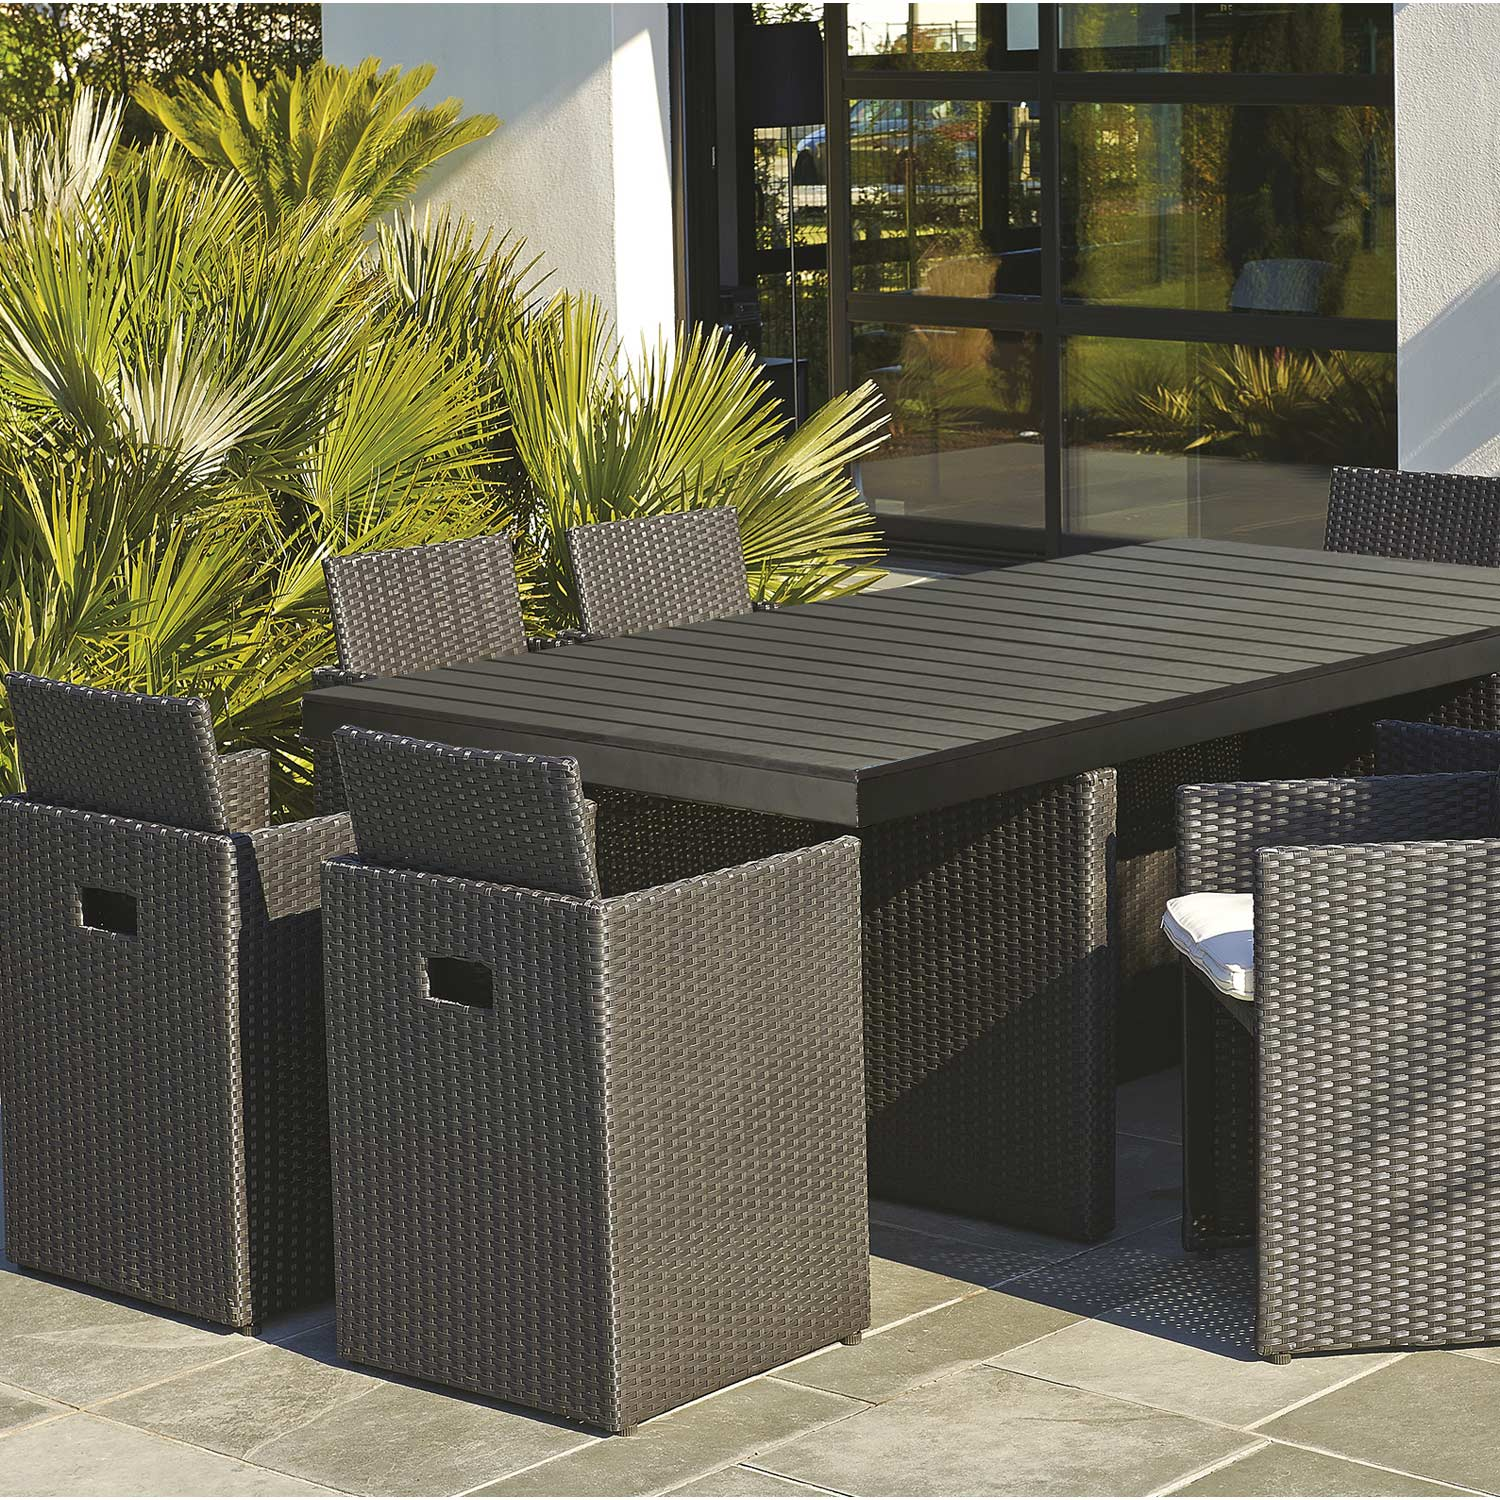 Salon de jardin encastrable r sine tress e noir 1 table - Carrelage salon leroy merlin ...